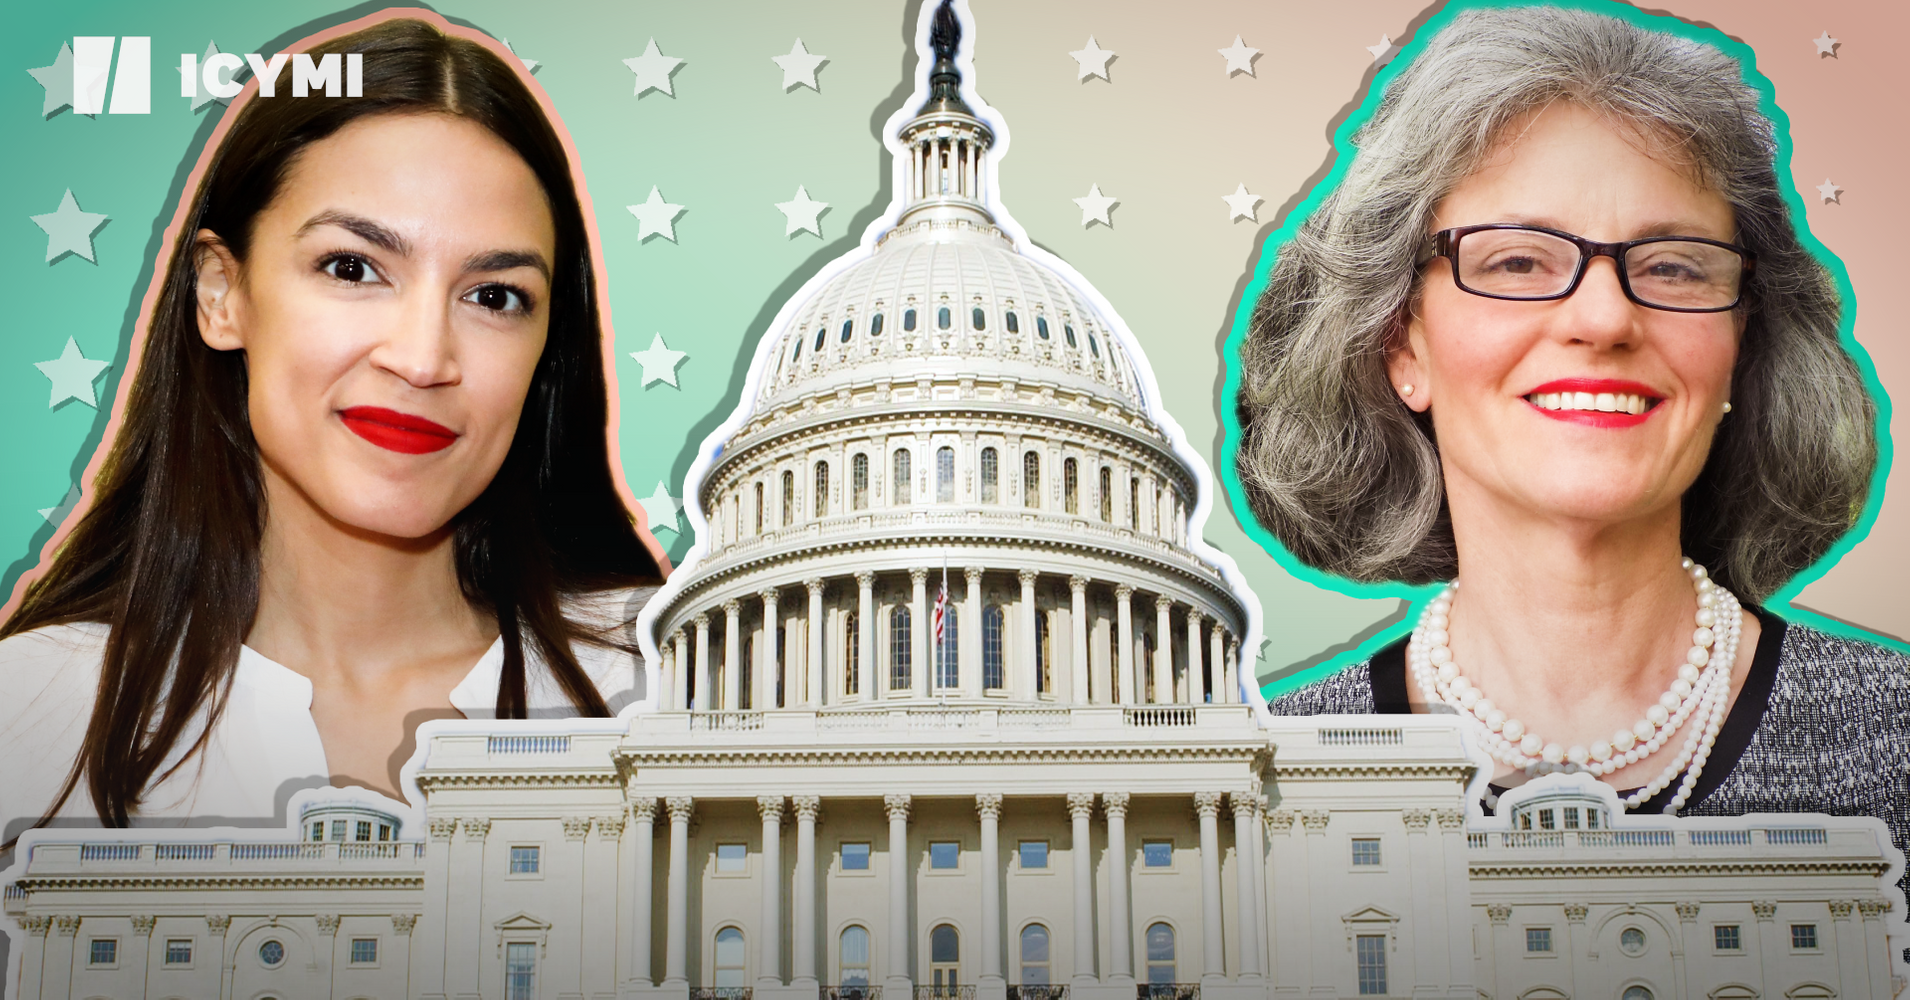 Westlake Legal Group 5cc0855a240000f0020525a1 The Story Behind Ocasio-Cortez's Win And The Reality Of Running For Office